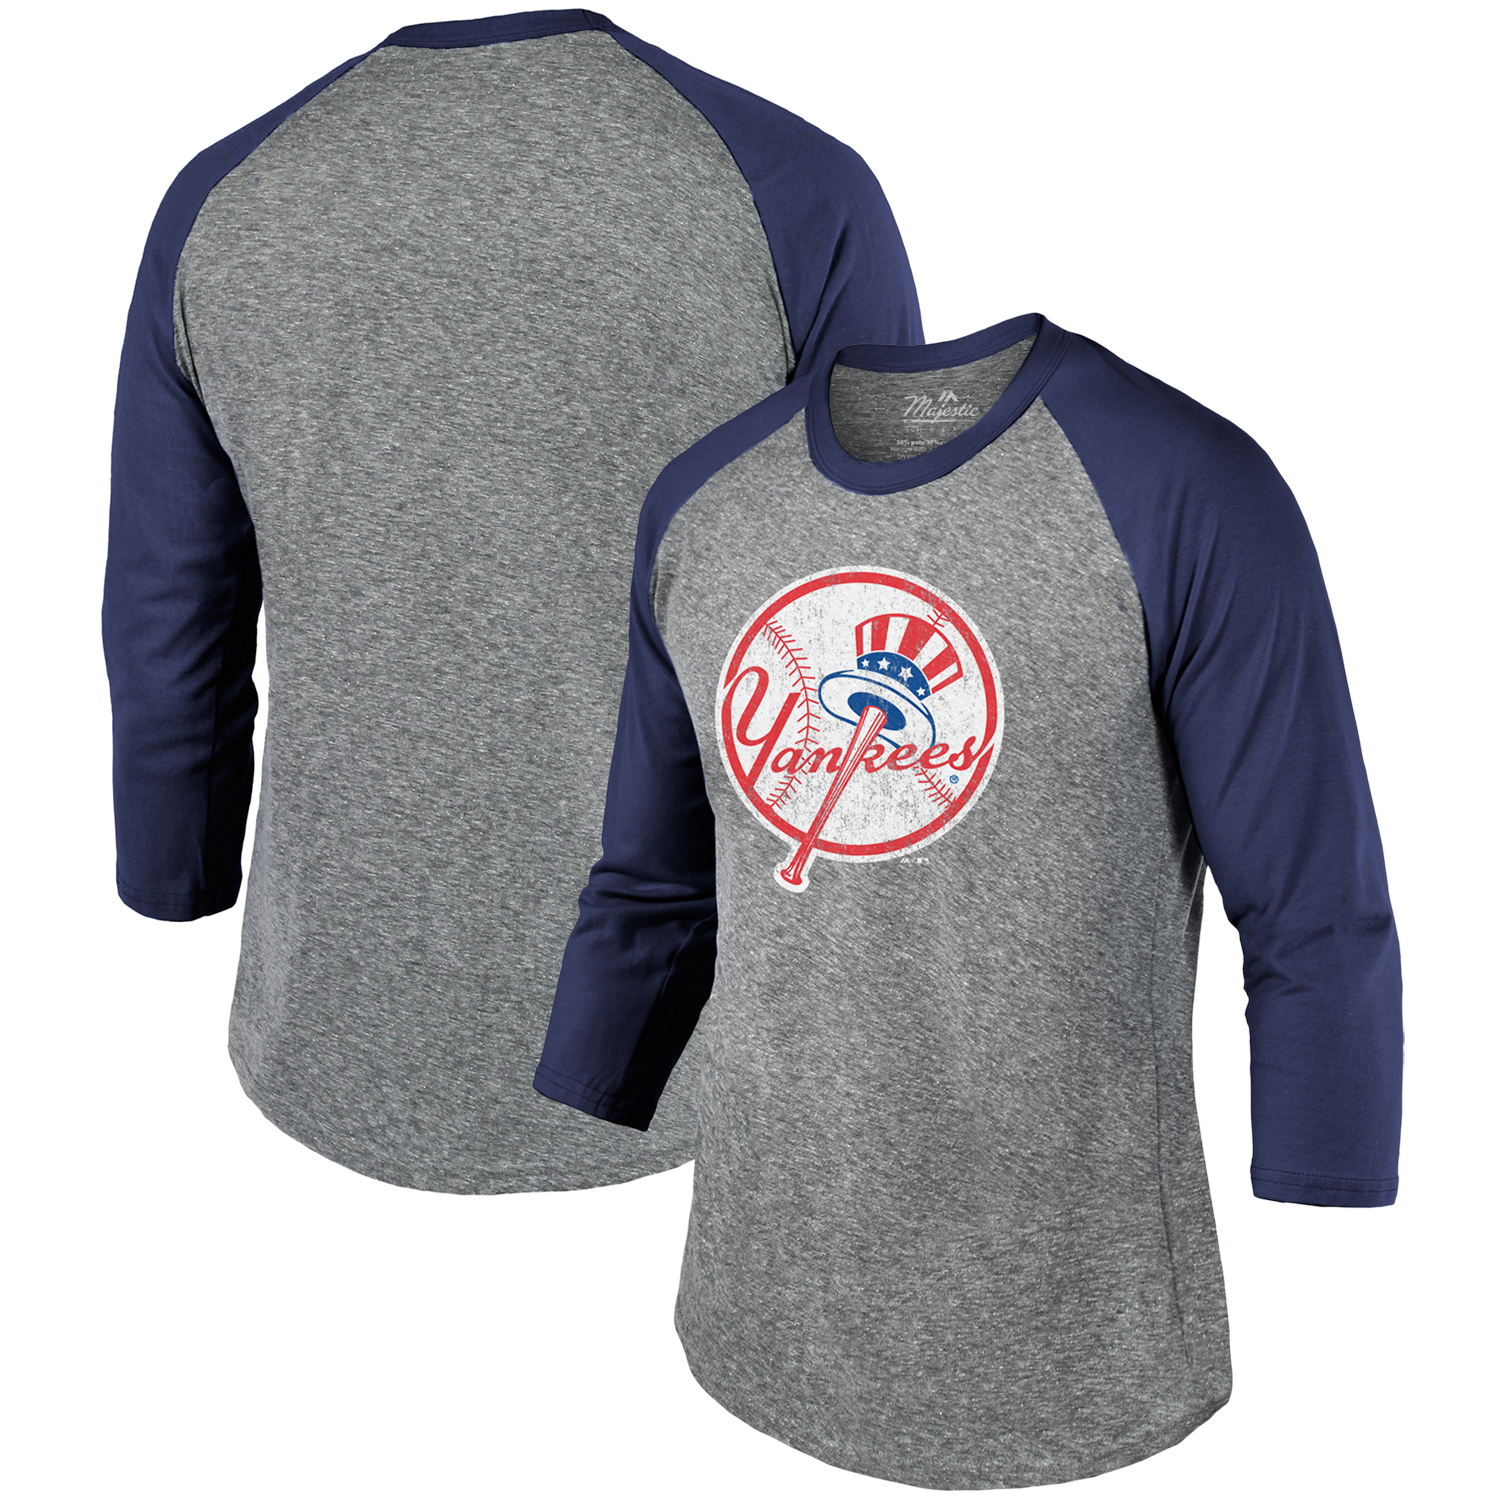 New York Yankees Majestic Threads Current Logo Tri-Blend 3/4-Sleeve Raglan T-Shirt - Heathered Gray/Navy